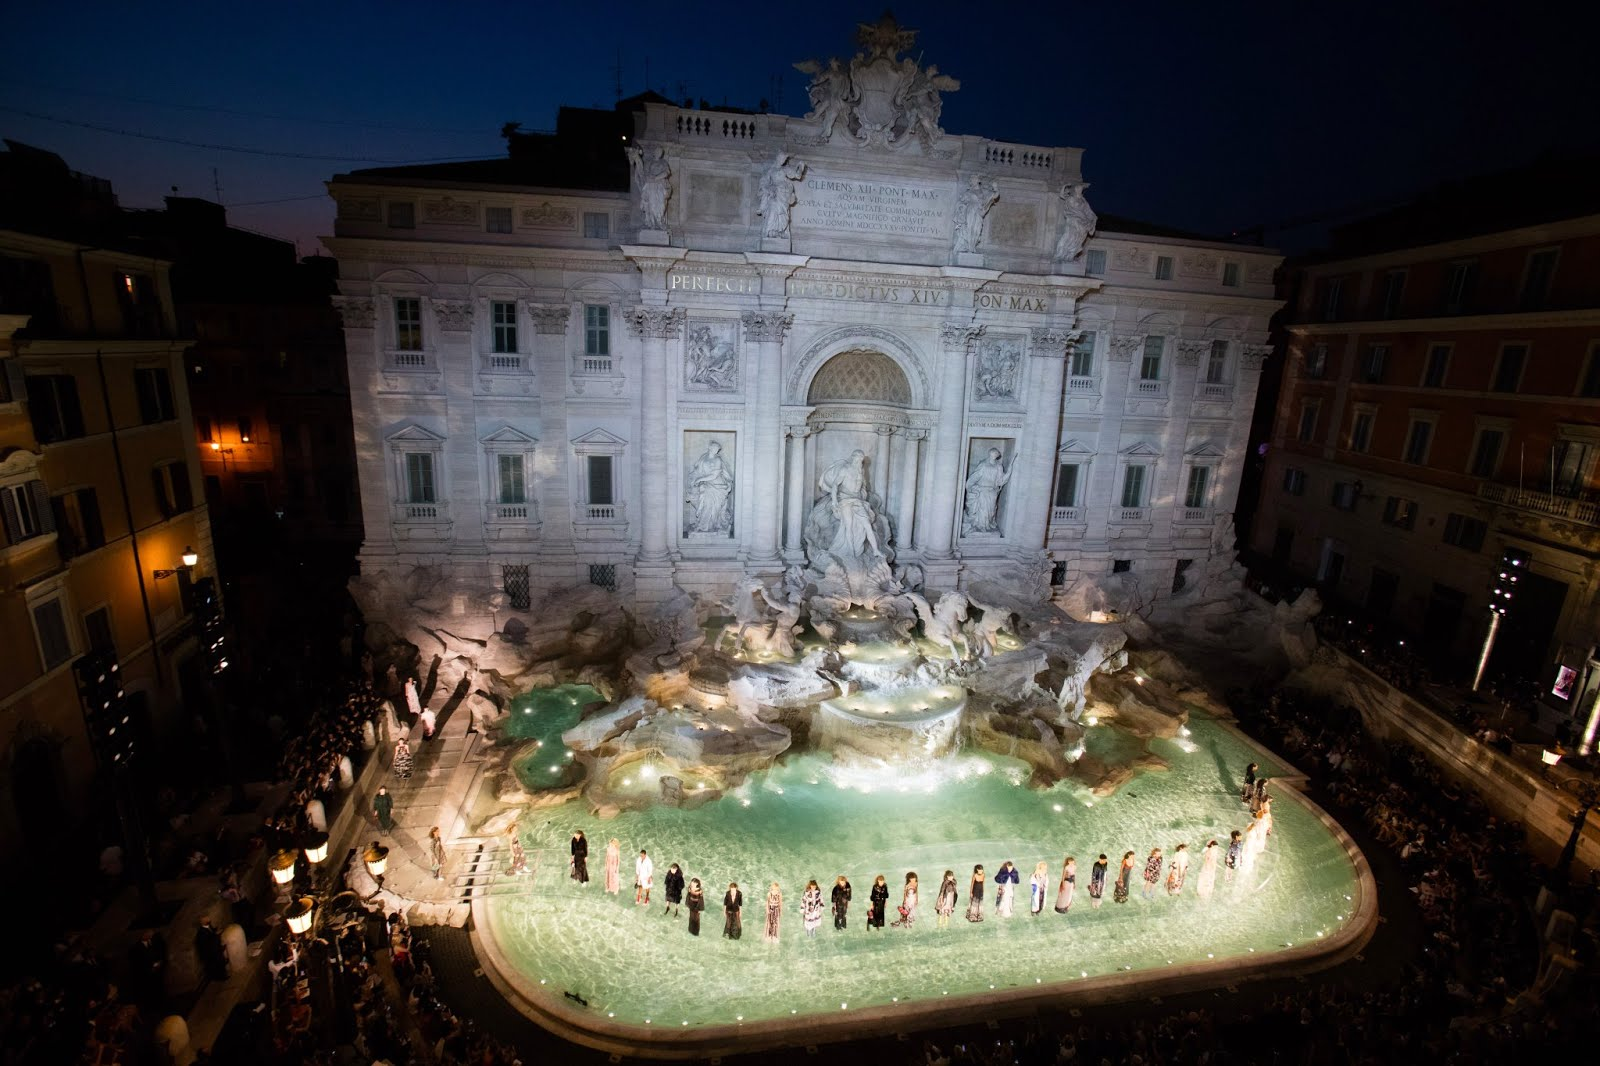 Fendi Fashion Show - 90th Anniversary - Rome - Trevi Fountain - Reflections with Raa